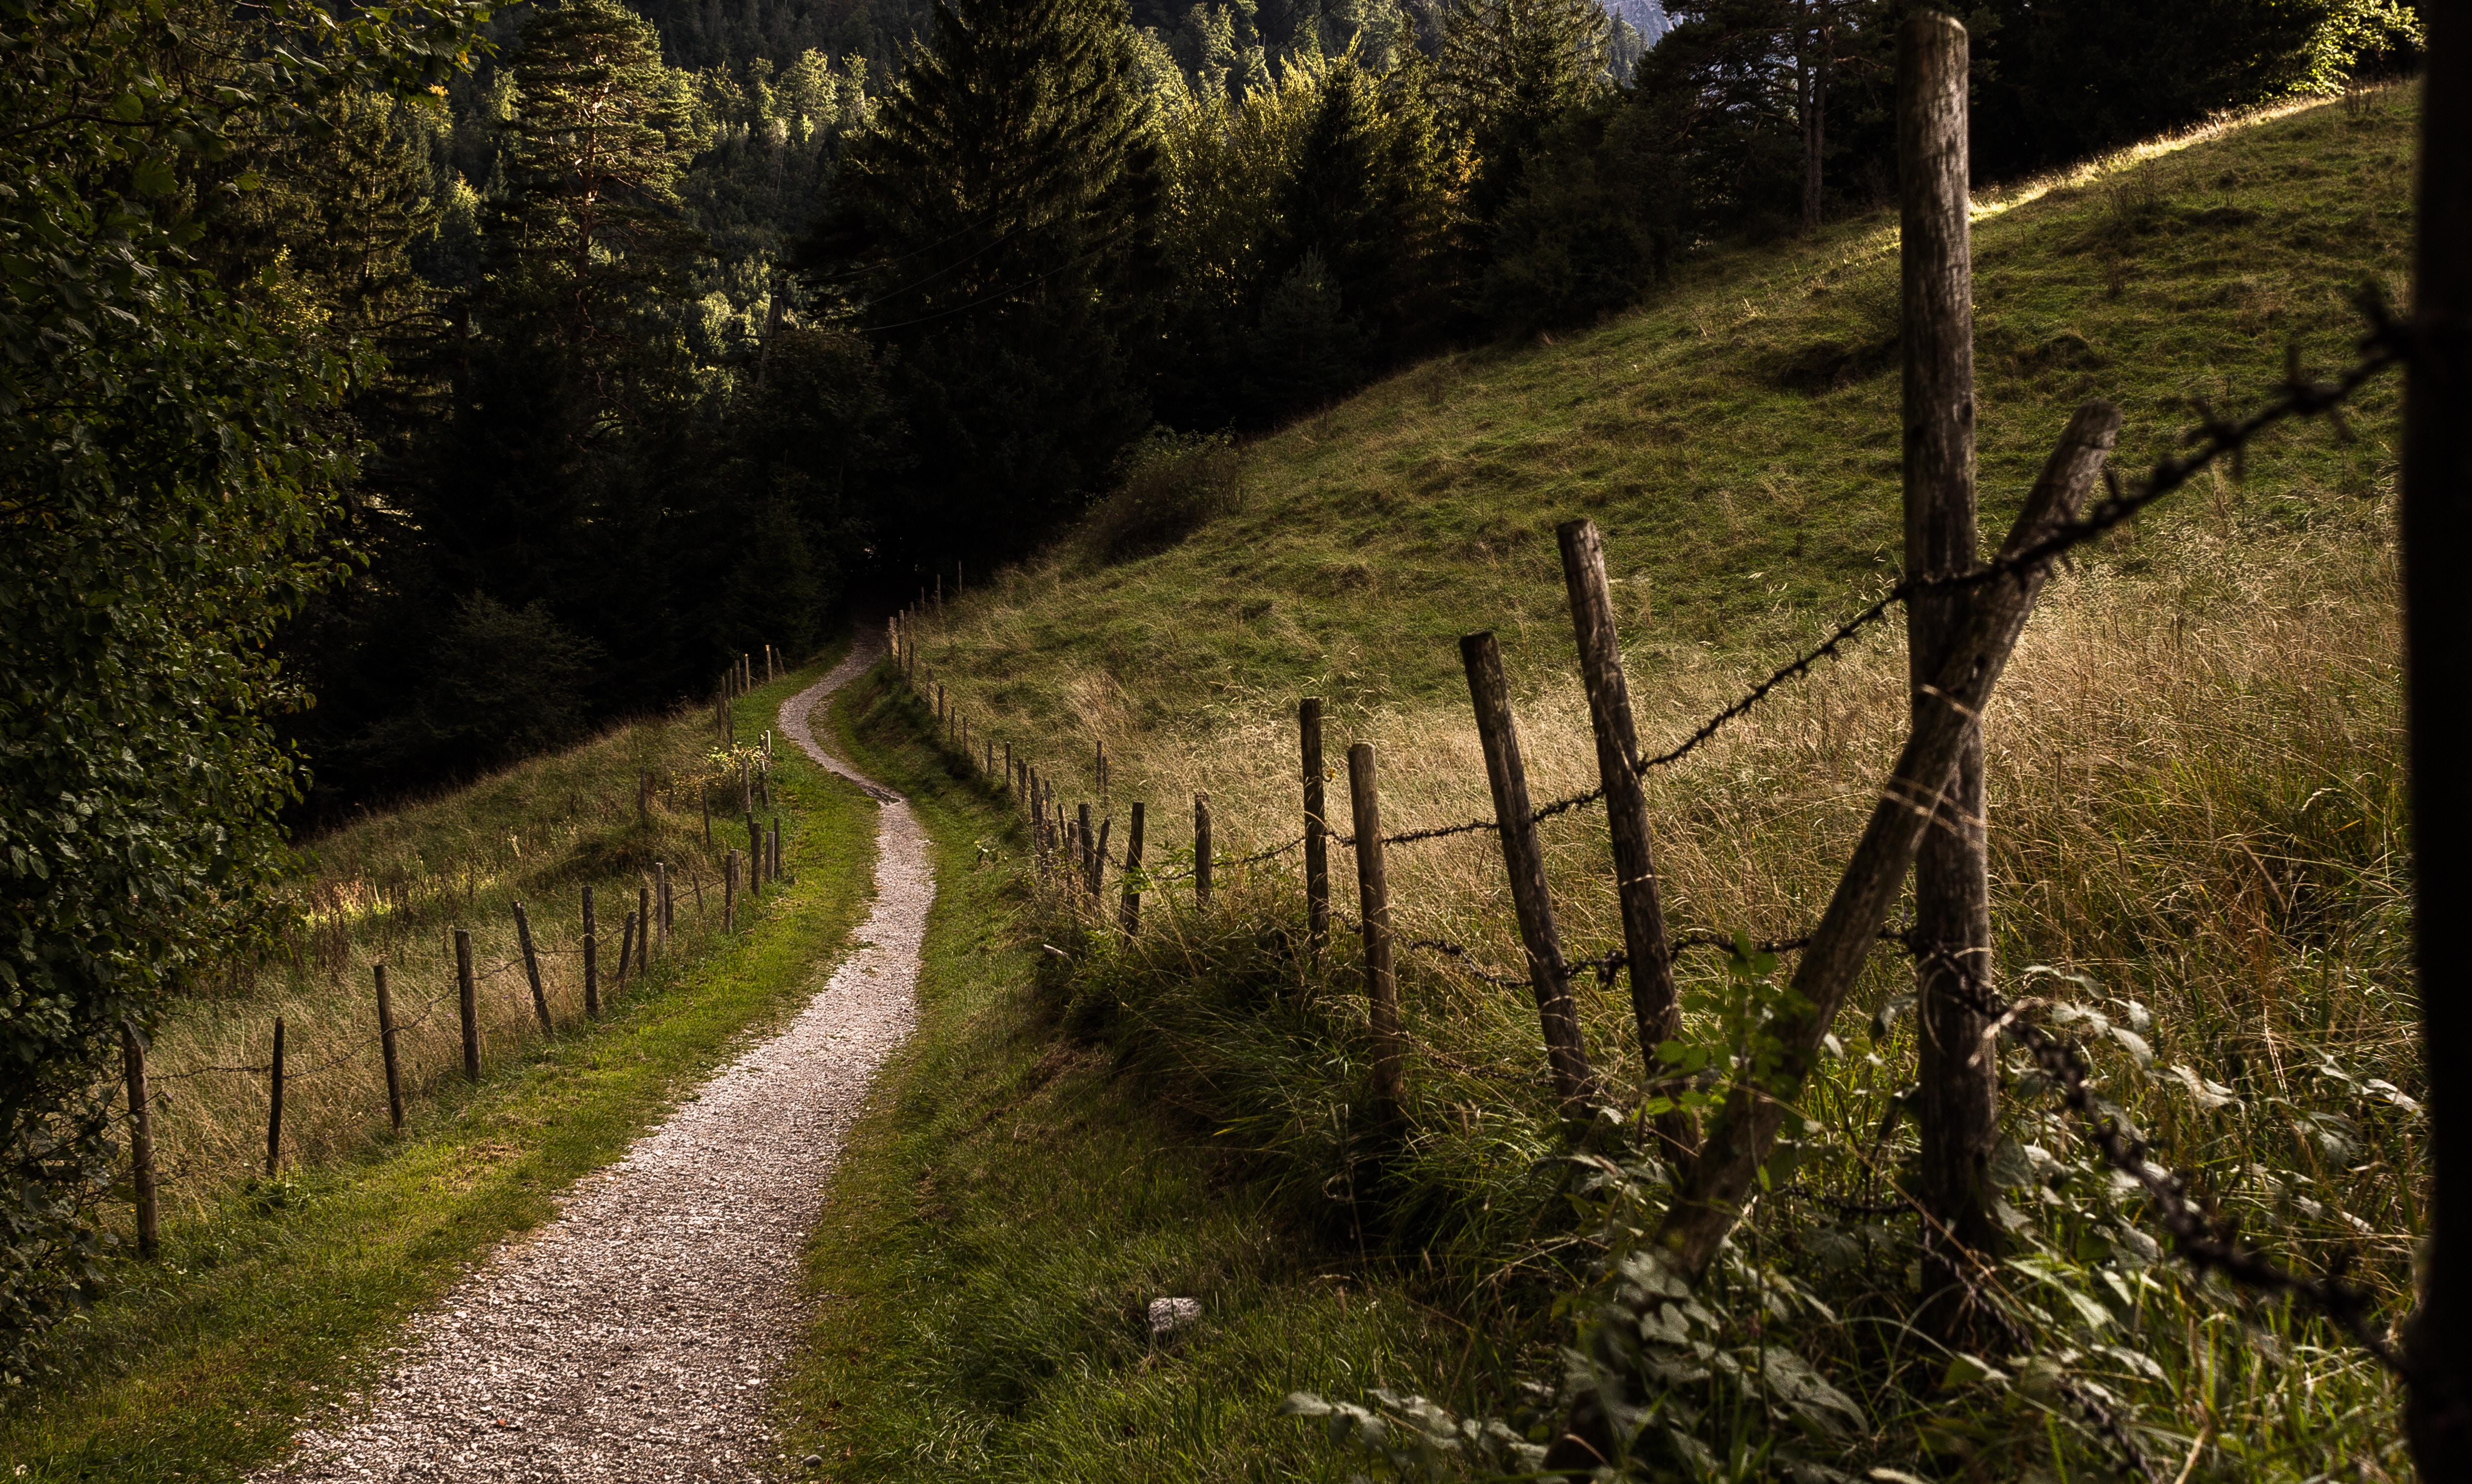 image of a winding path leading into the woods